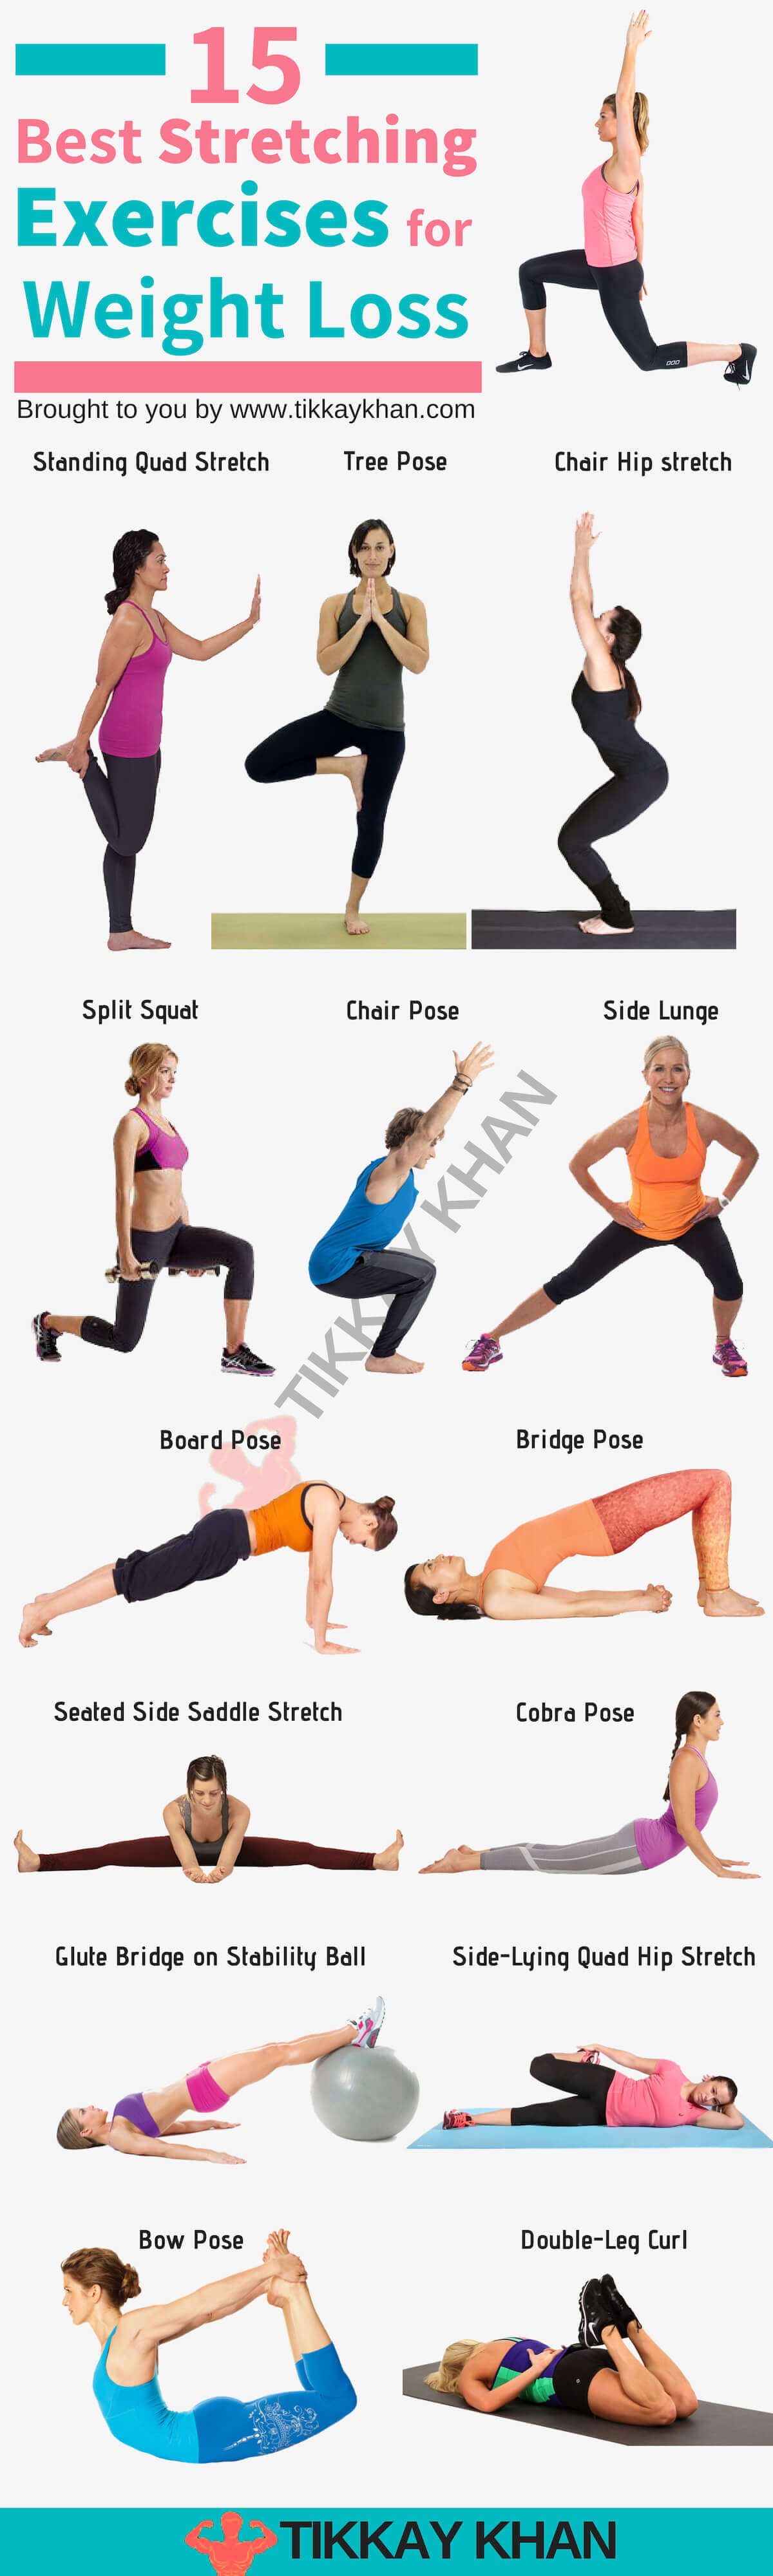 15 Best Stretching Exercises for Weight Loss